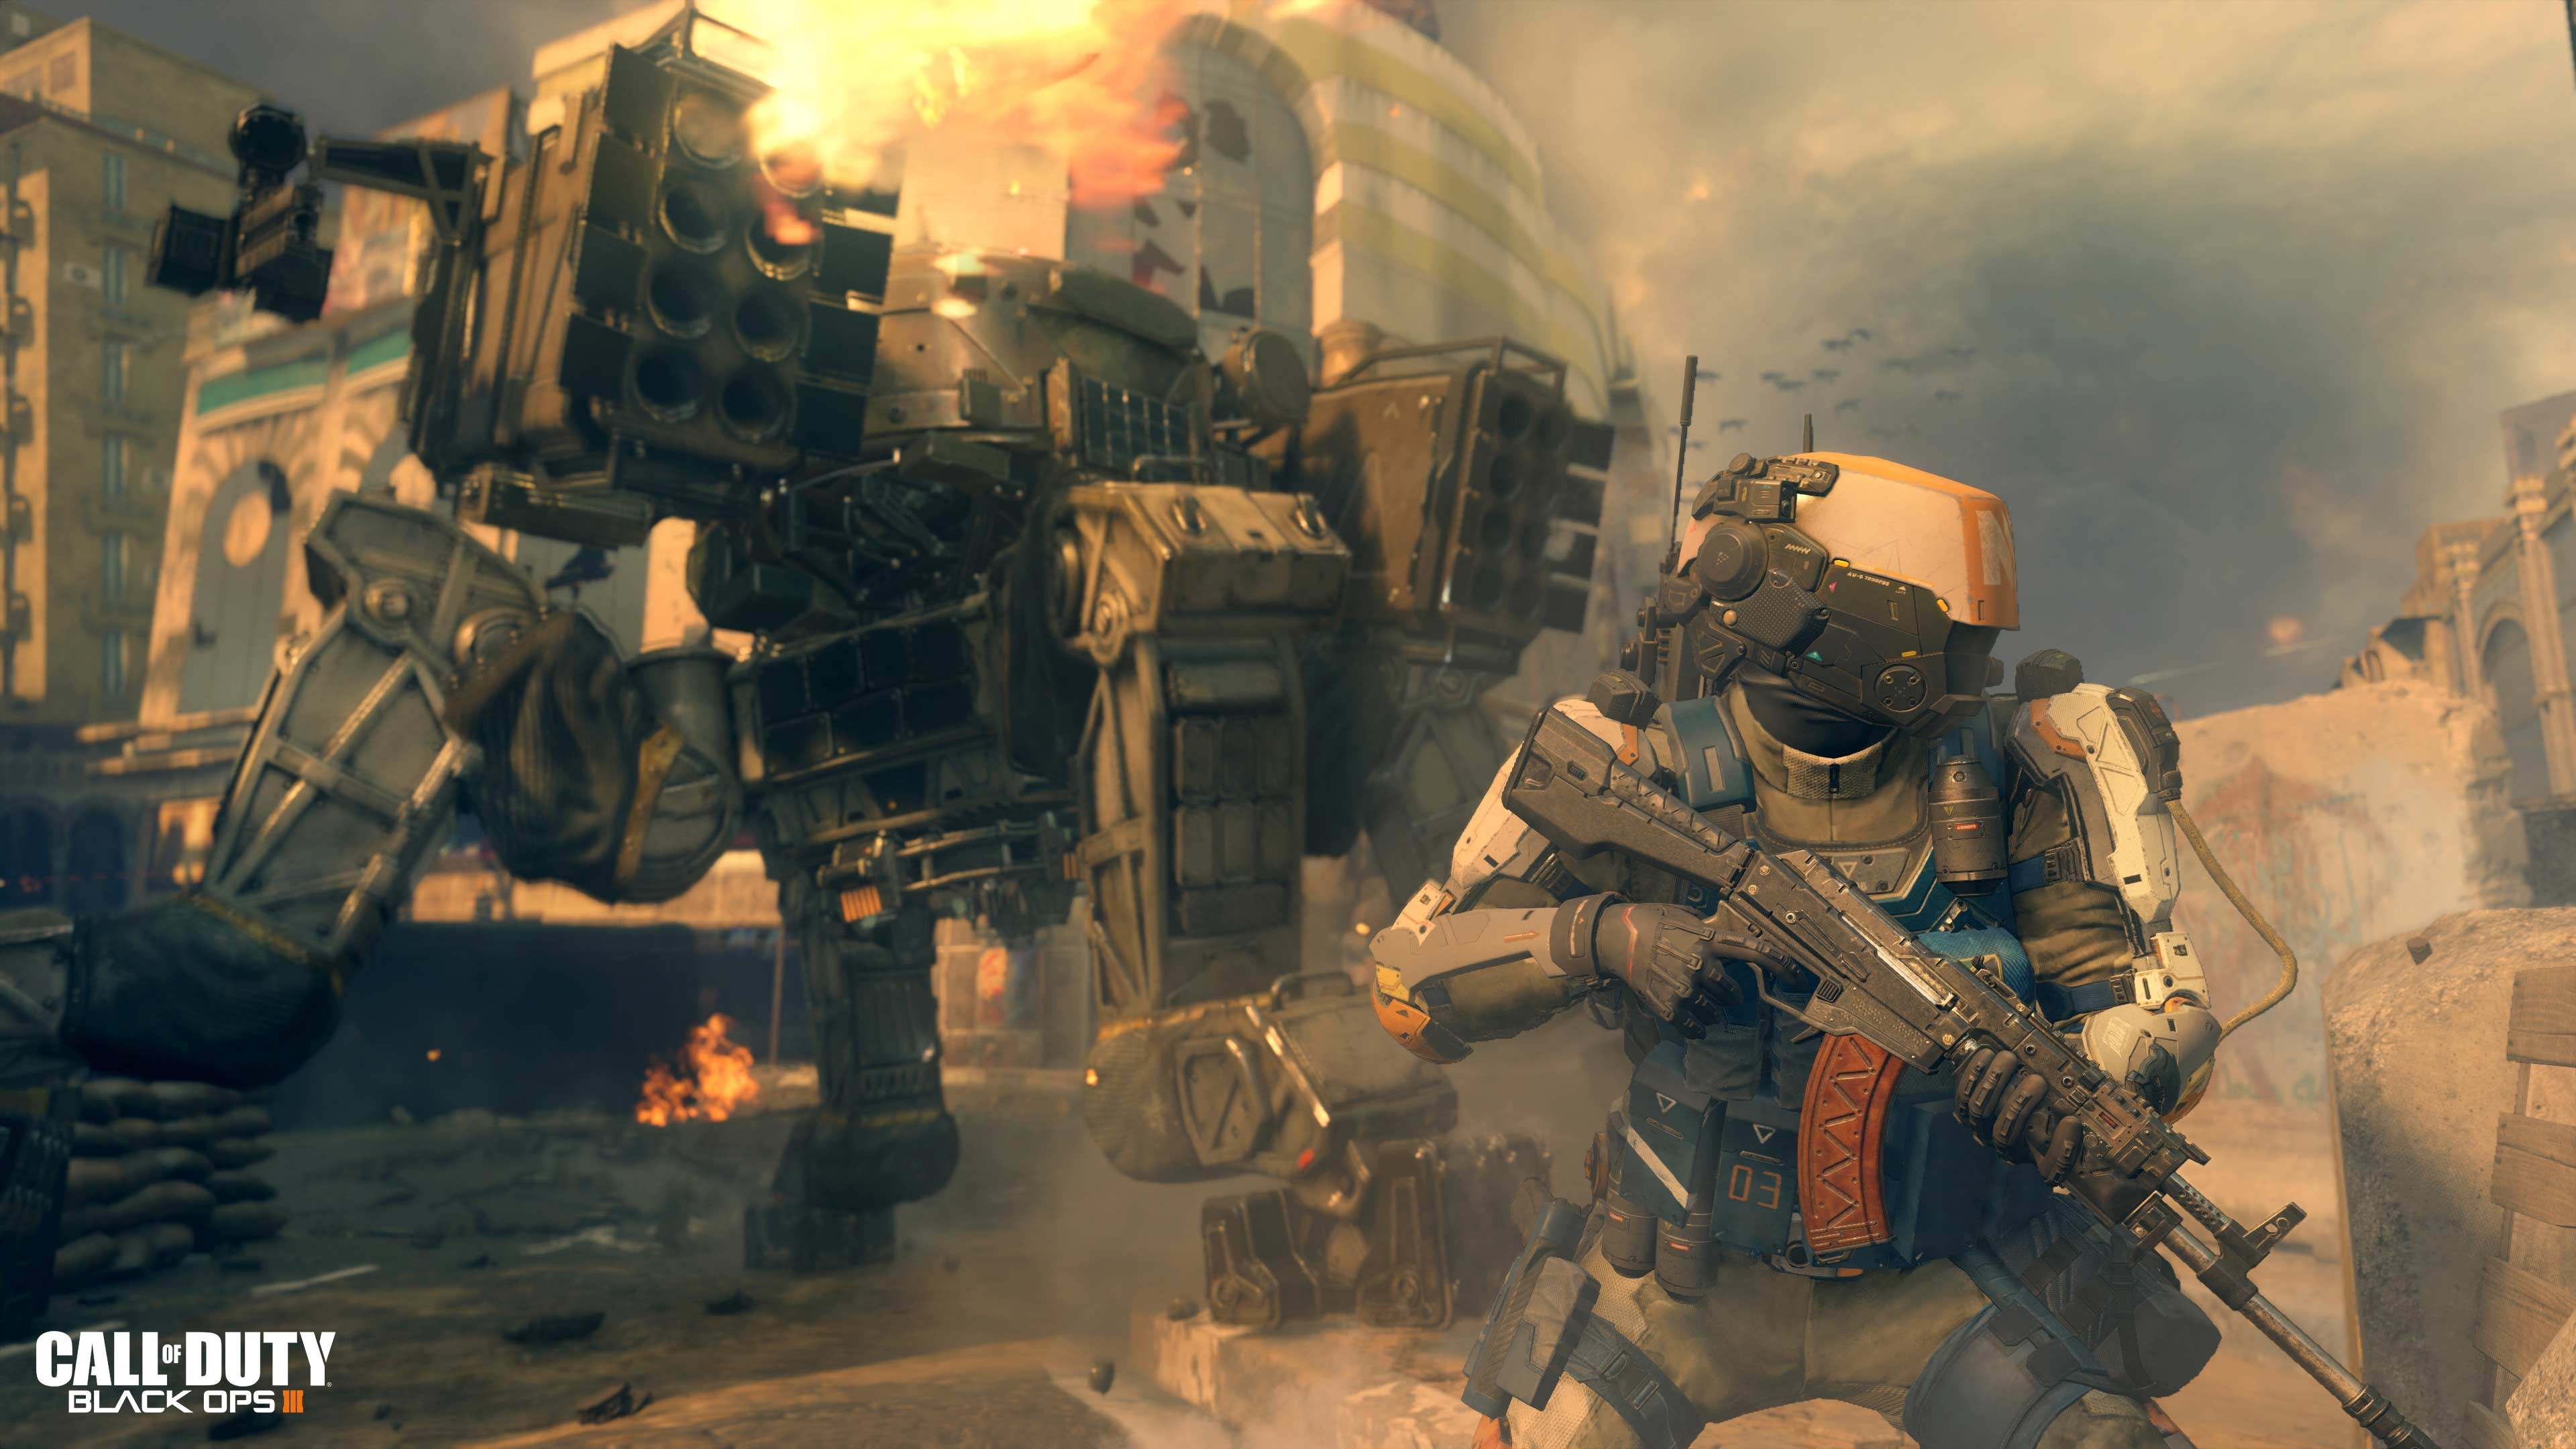 Call of Duty Black Ops 35